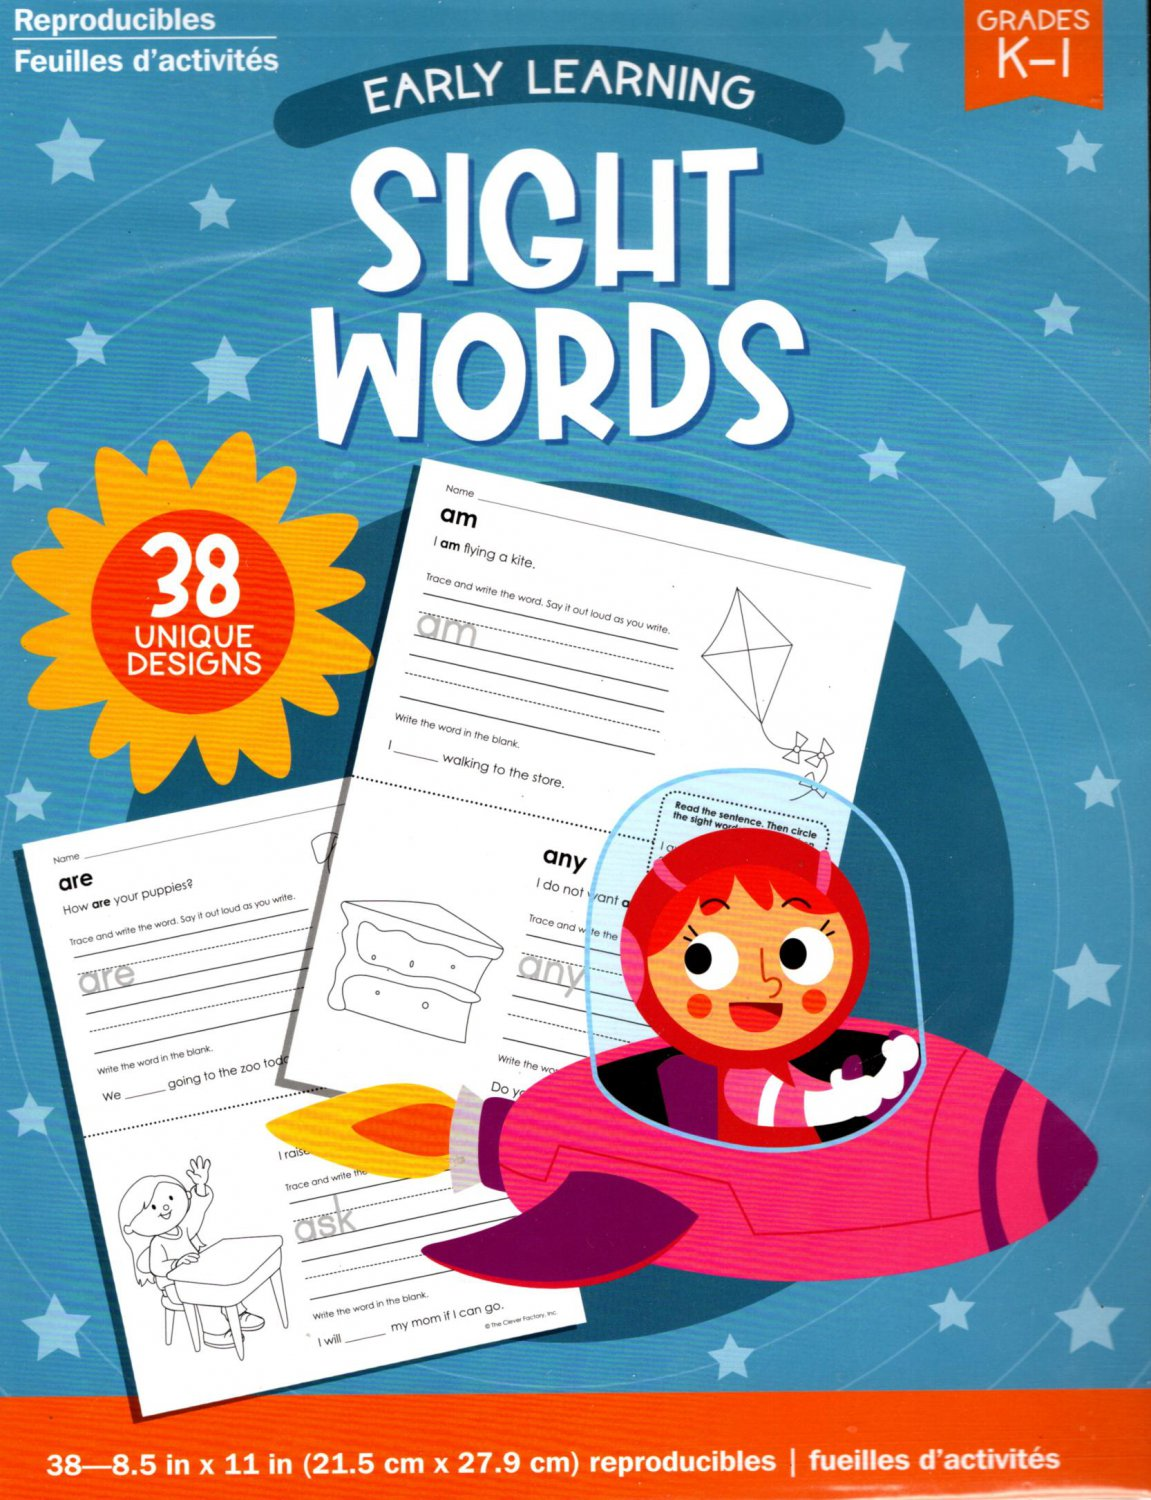 Early Learning - Sight Words Educational Workbook - Reproducible - Grades K-1 v2